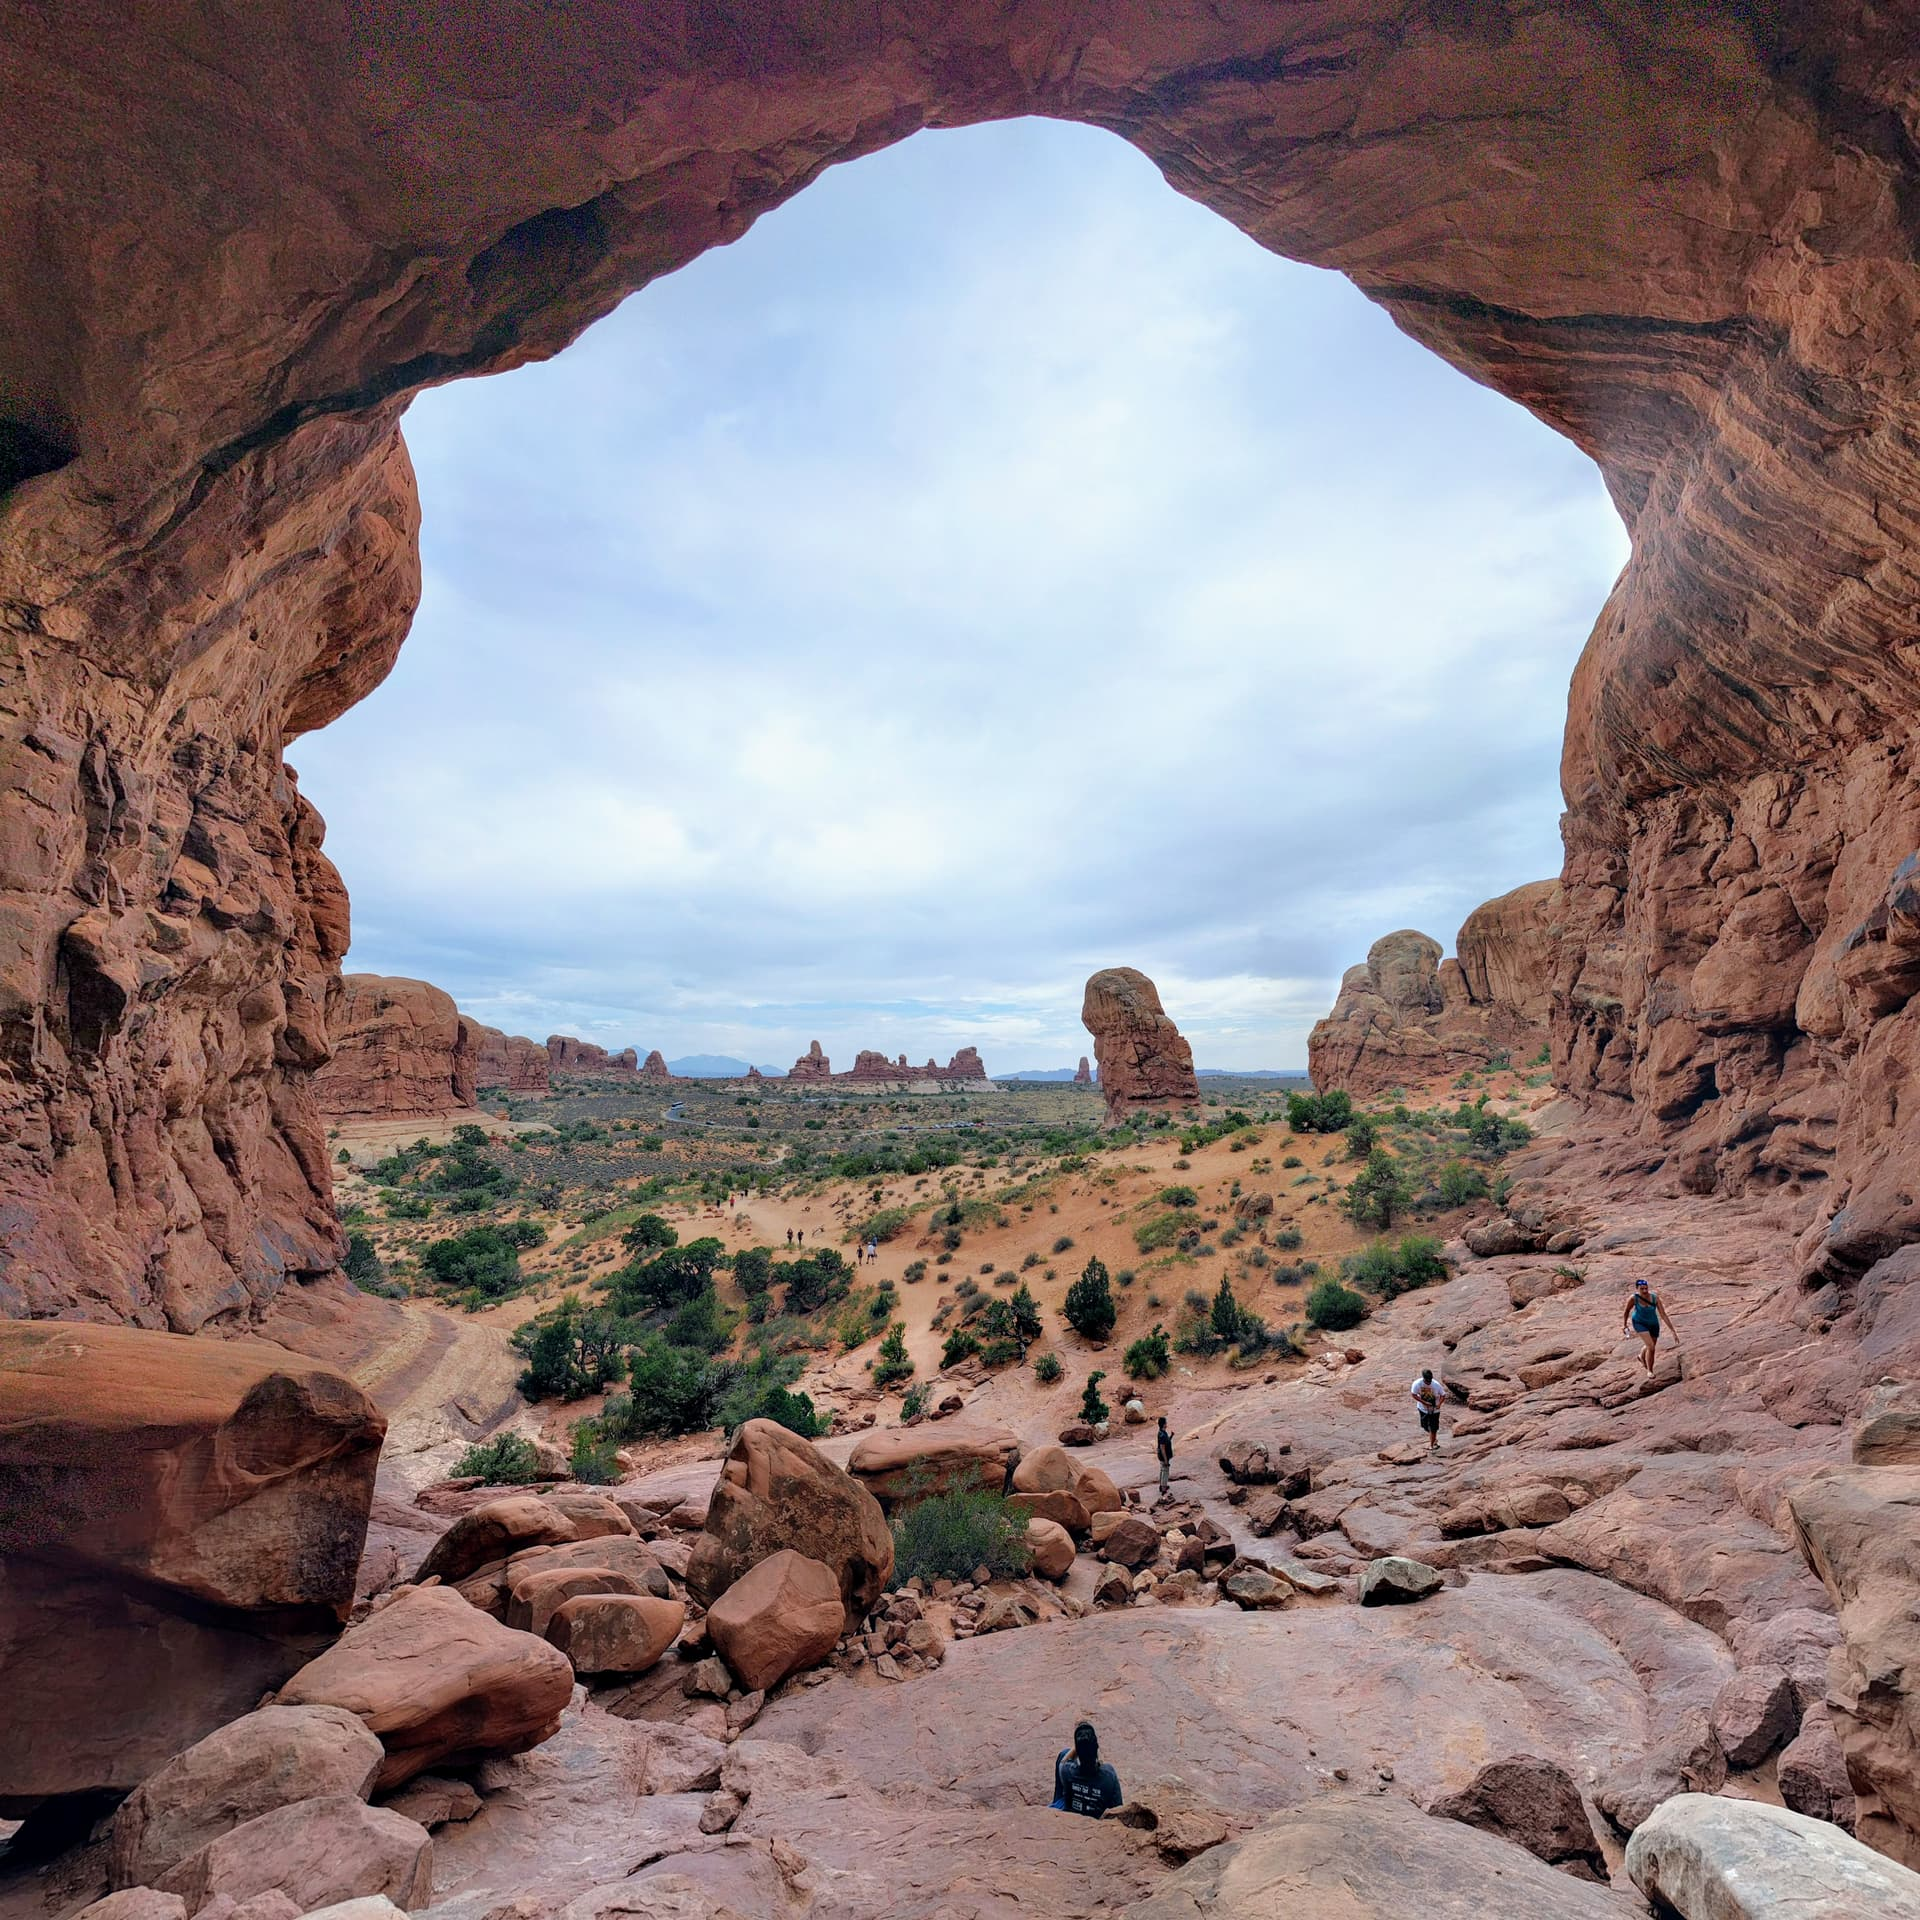 Looking through one of the arches of Double Arch back out towards the rest of Arches National Park. The wide-angle shot makes the arch almost look like a cave. In the foreground, Len watches an approaching group of hikers.